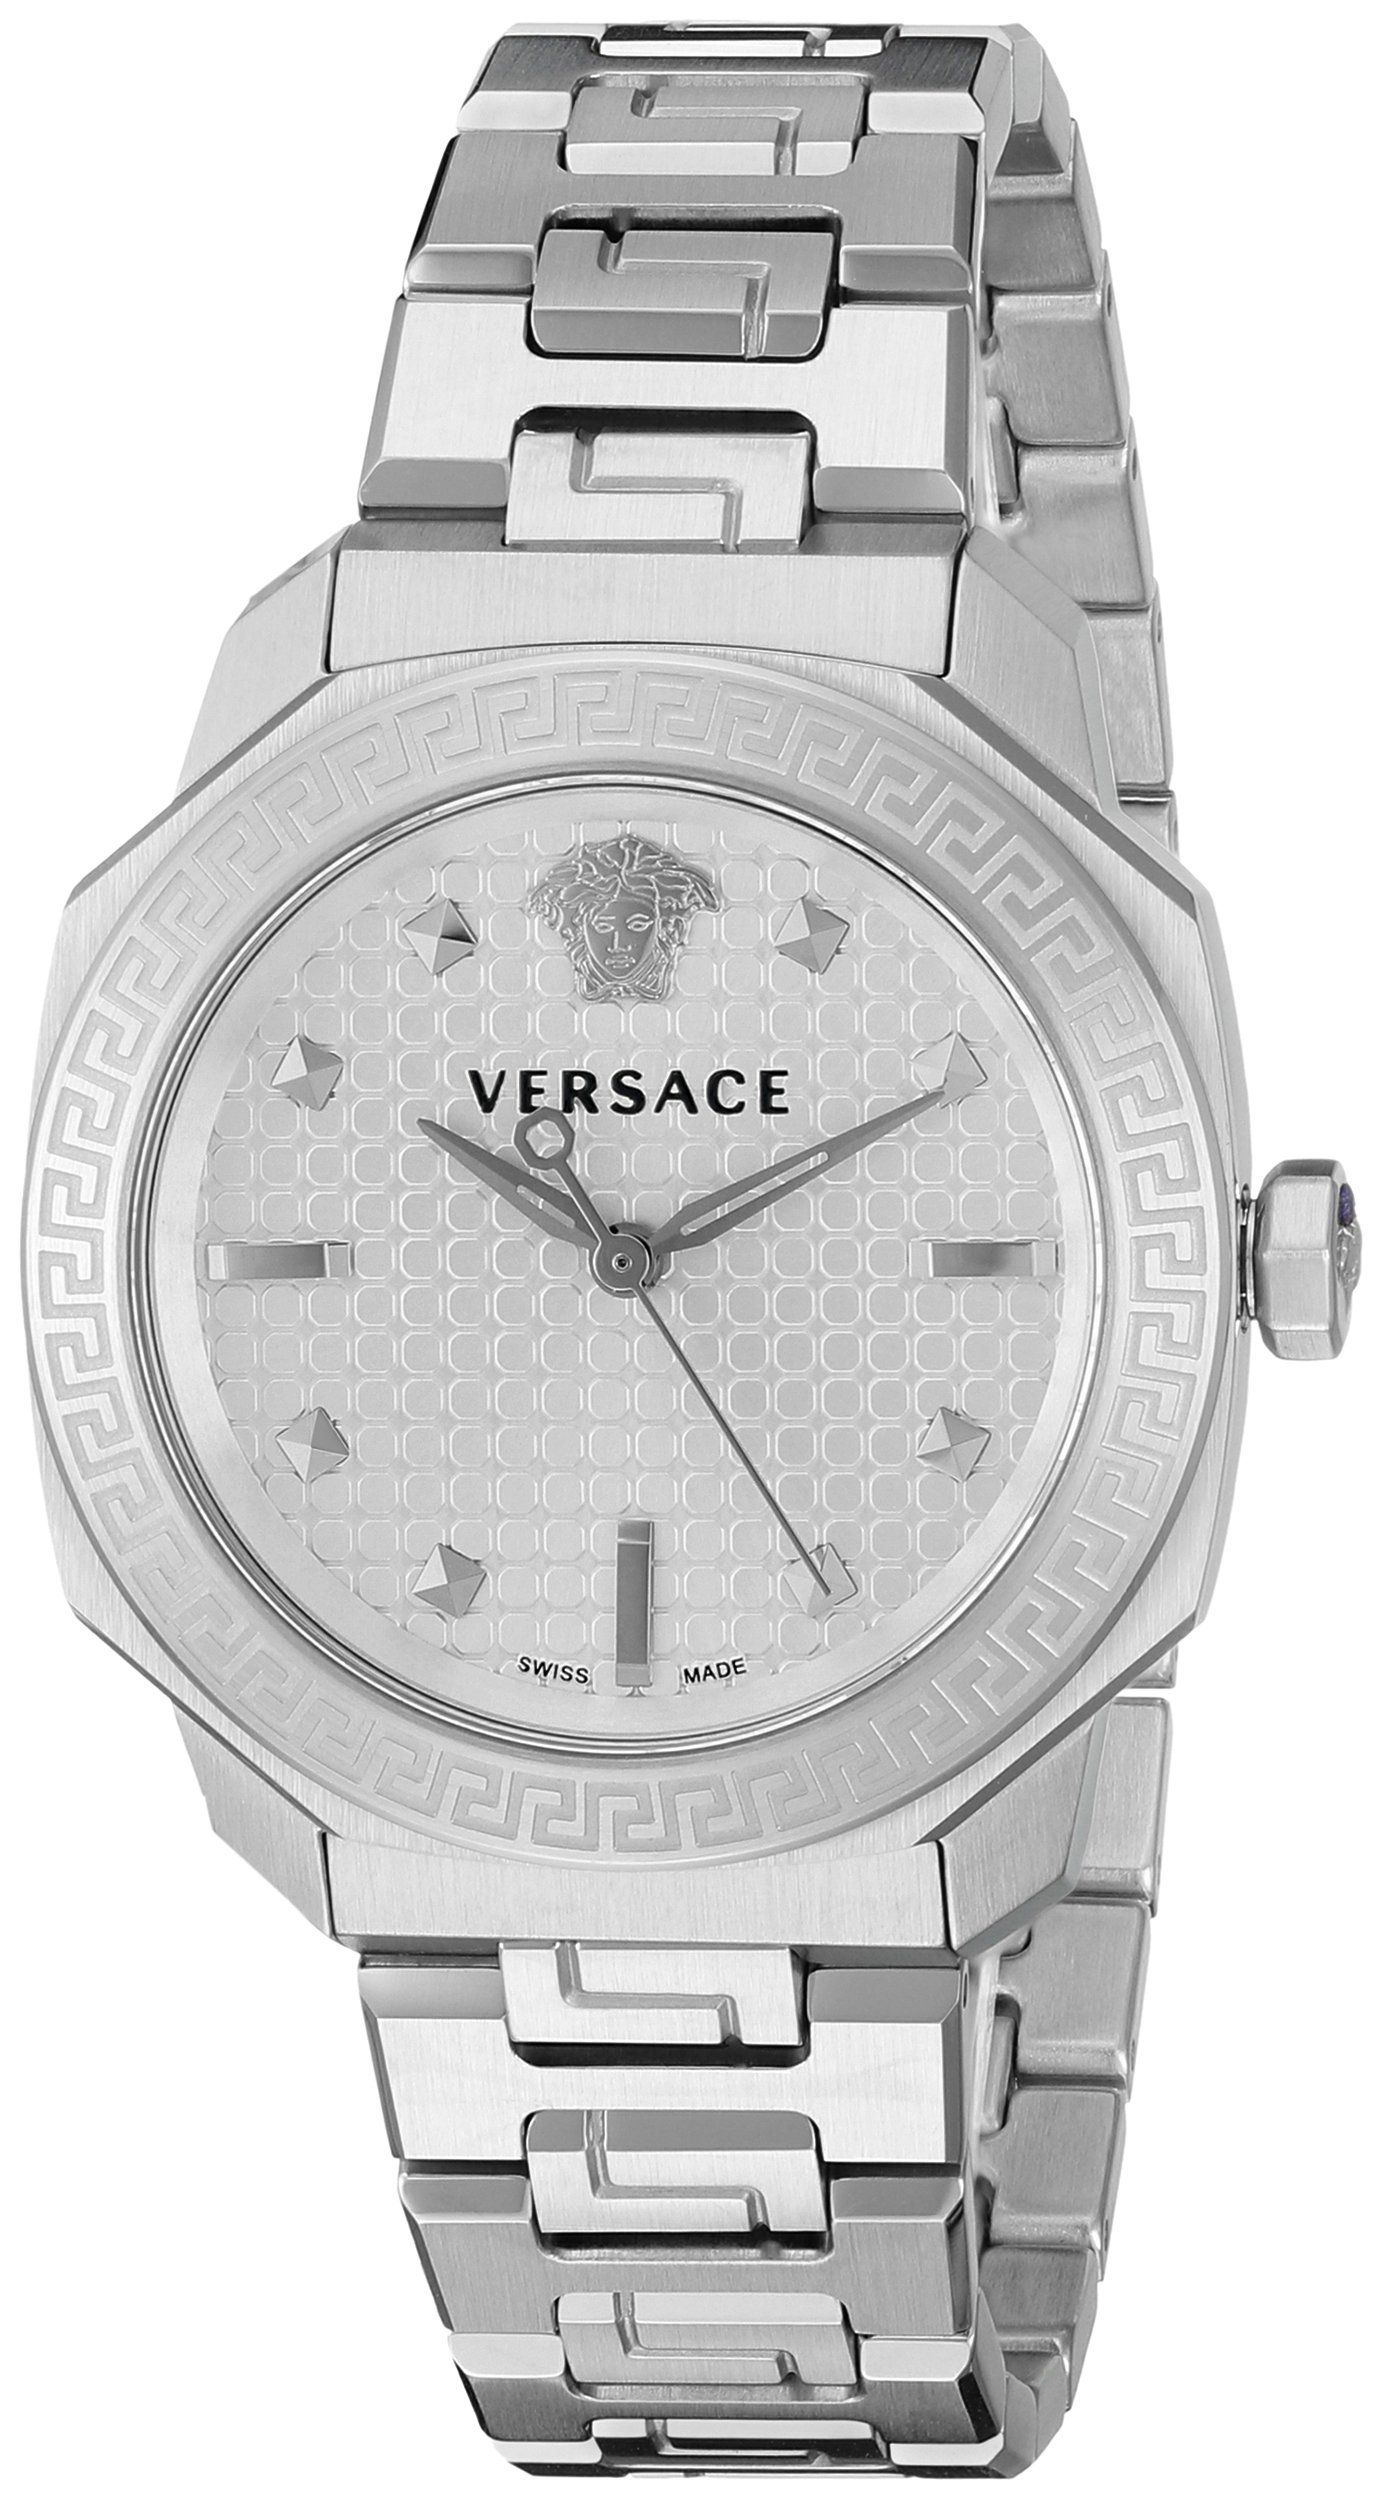 Versace womenus vqd dylos stainless steel bracelet watch